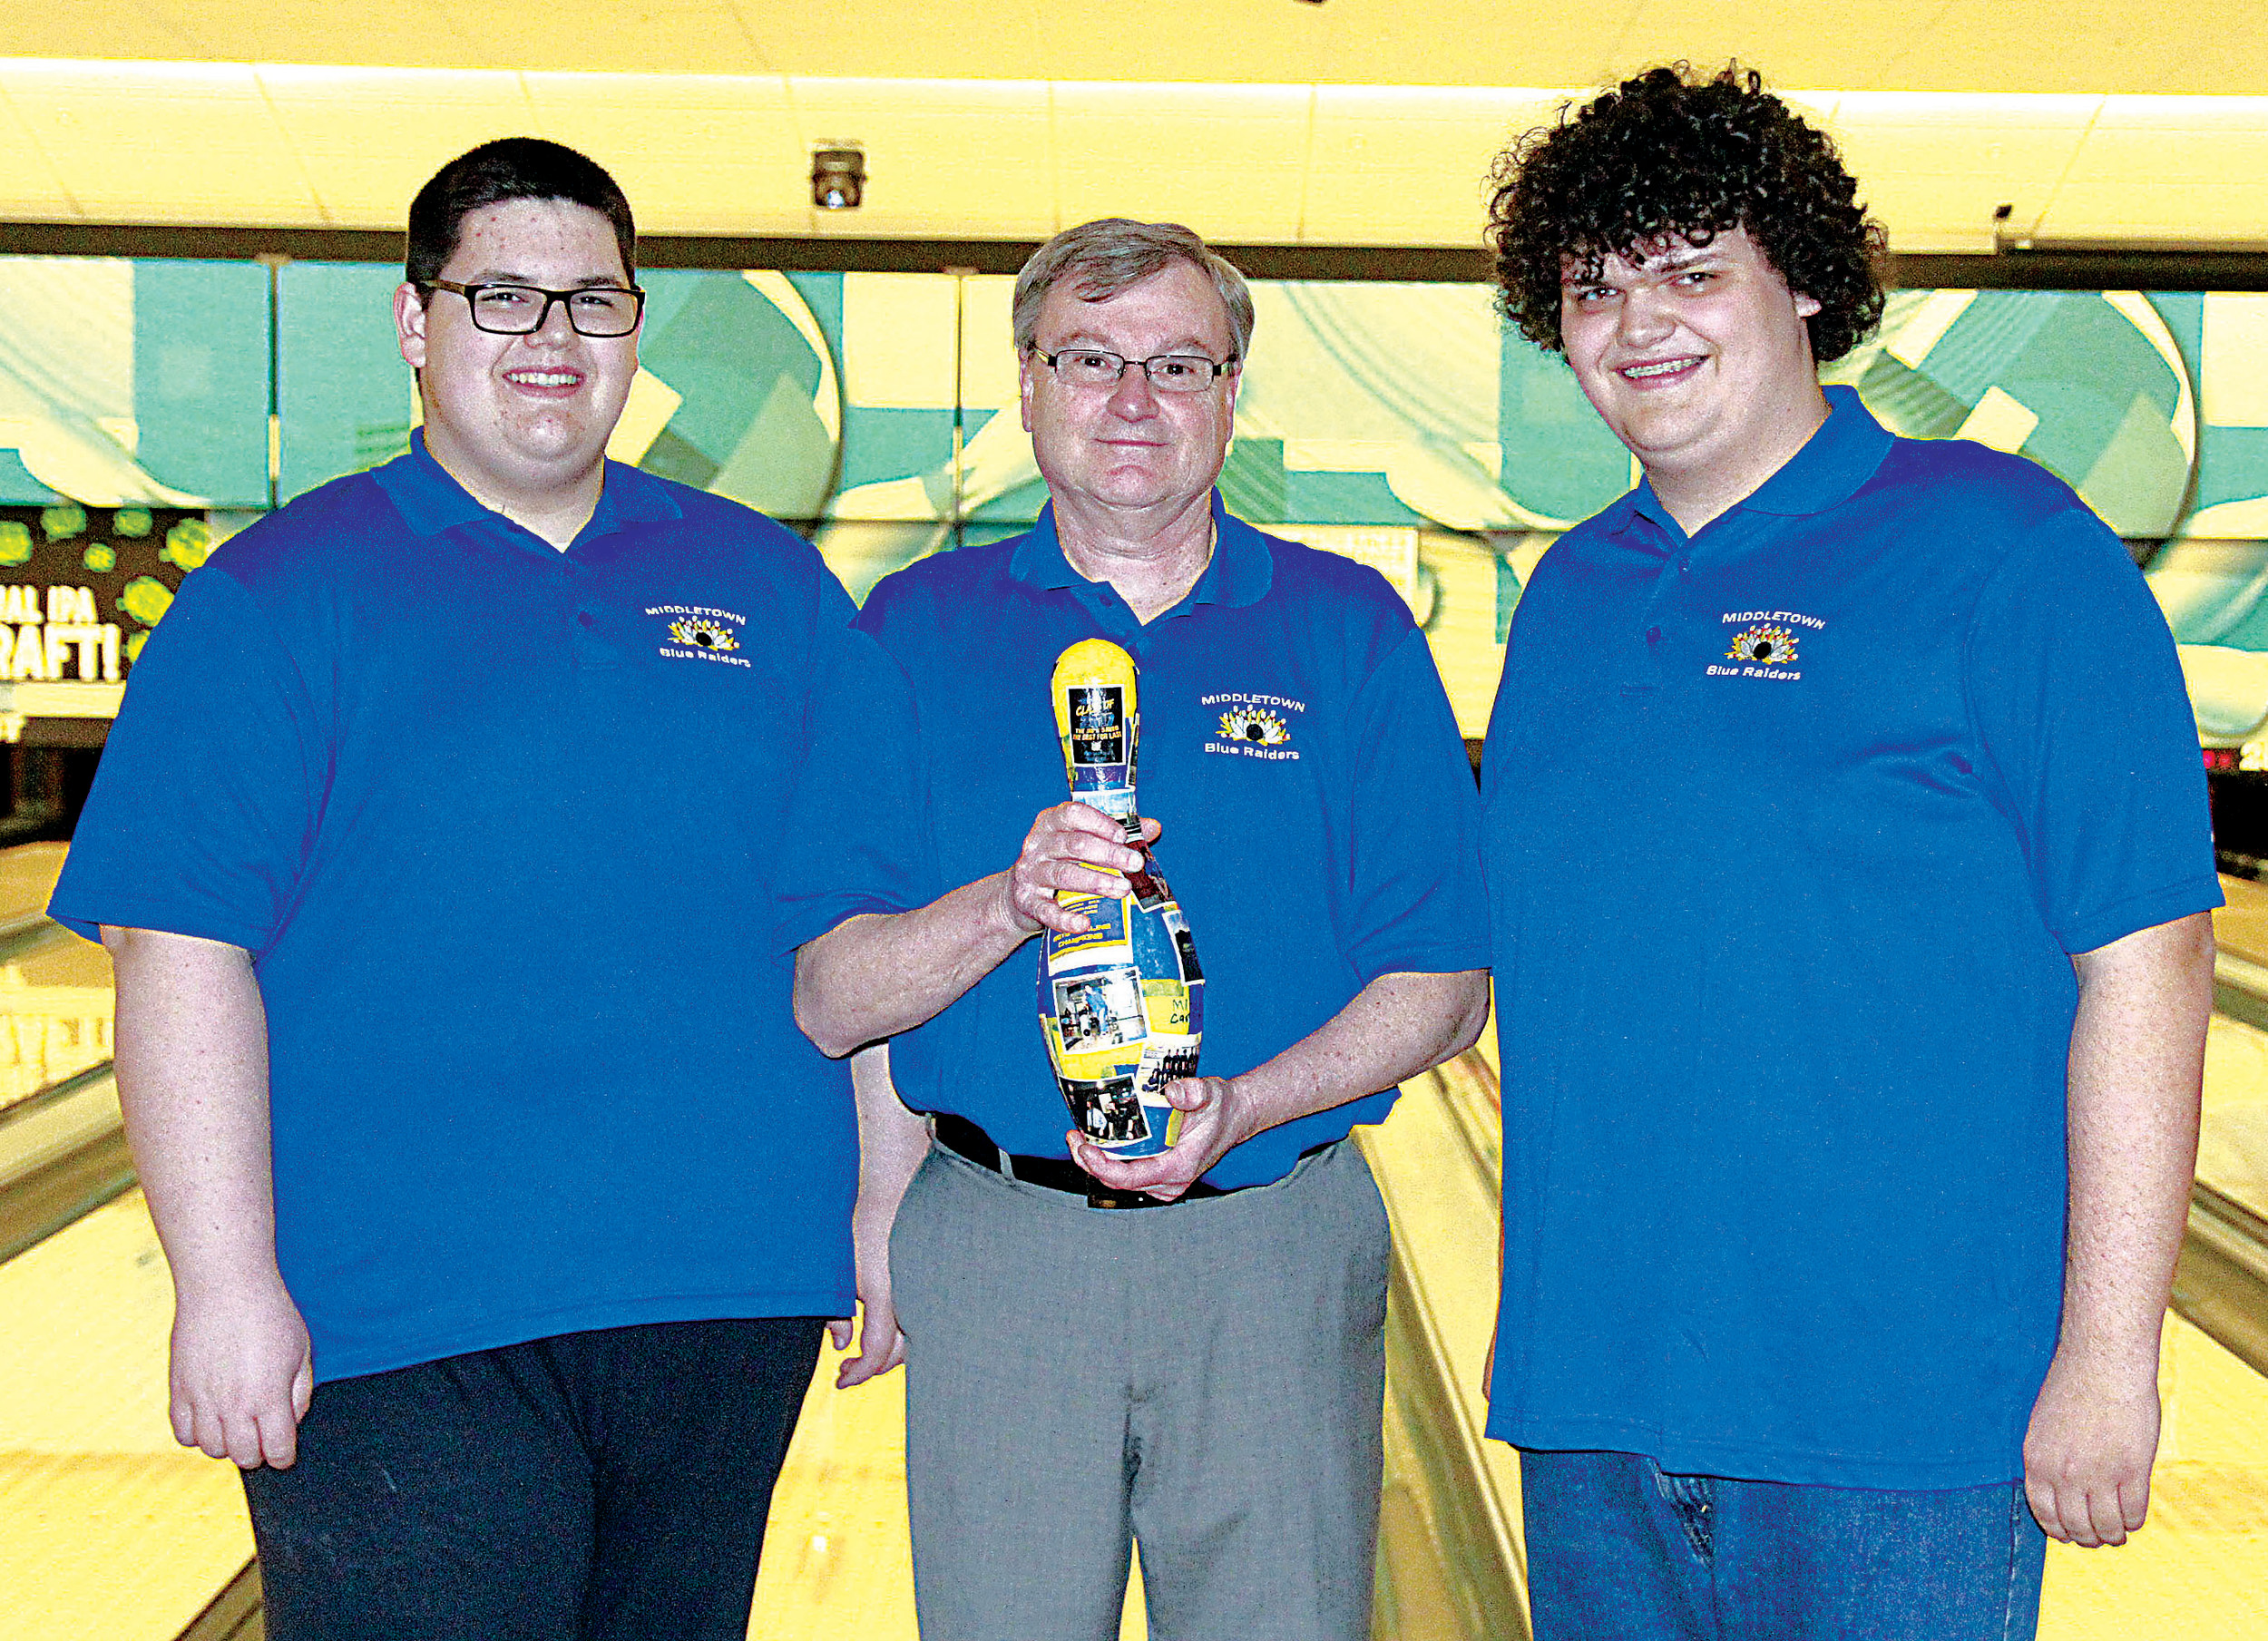 Caleb Orner, bowling coach Darrell Bower and Mitch Carson celebrate senior recognition day at ABC East Lanes on Feb. 23.